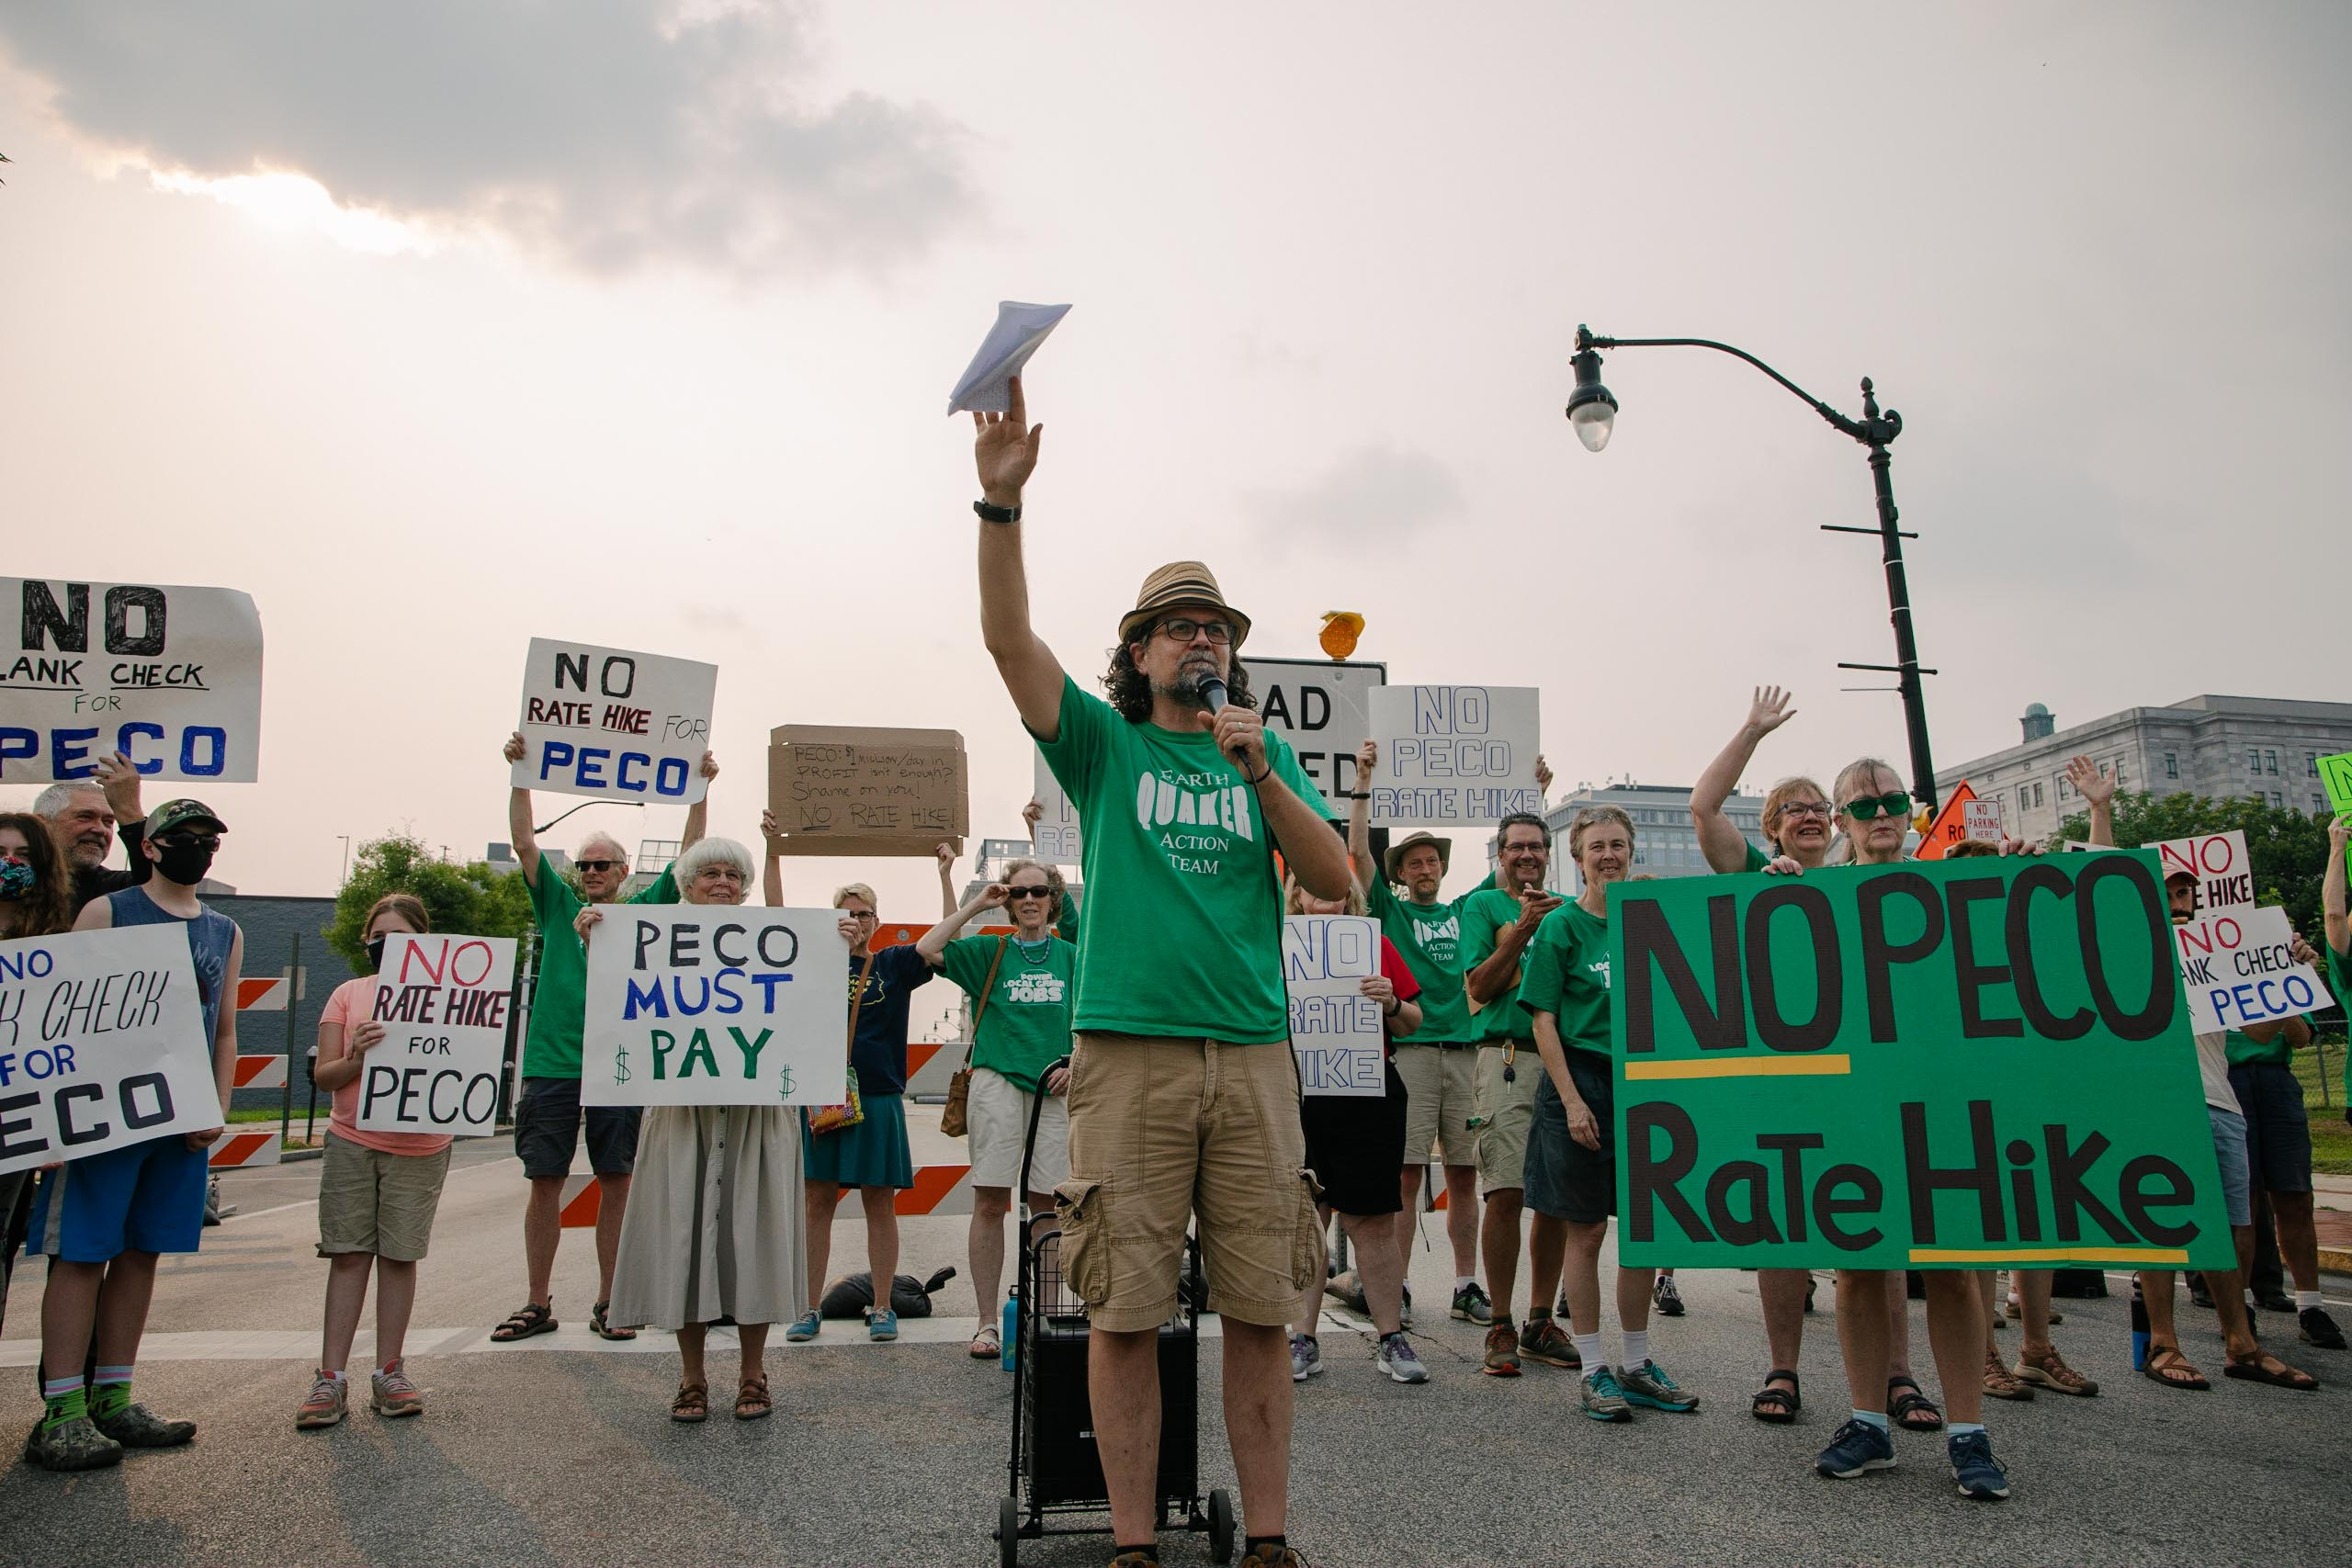 Activists holding signs about PECO's rate hike stand and smile behind an activist wearing a green shirt and speaking into a microphone